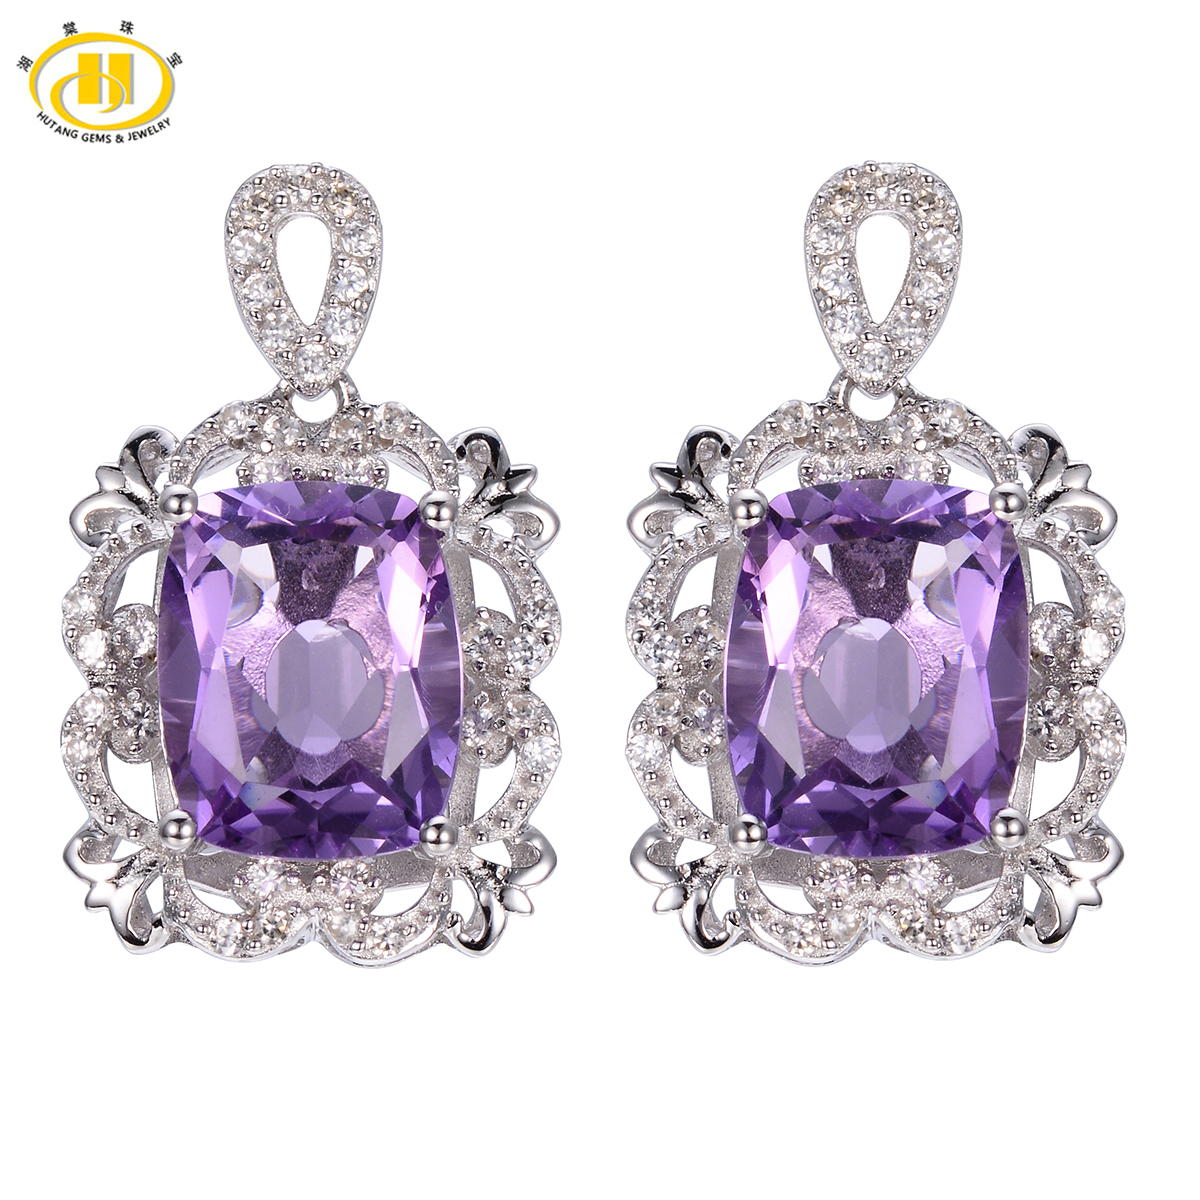 Hutang 6.08ct Amethyst Vintage Style Earrings Solid 925 Sterling Silver Fine Natural Gemstone Jewelry Women's Gift Party серьги висячие vintage style pentacle earrings